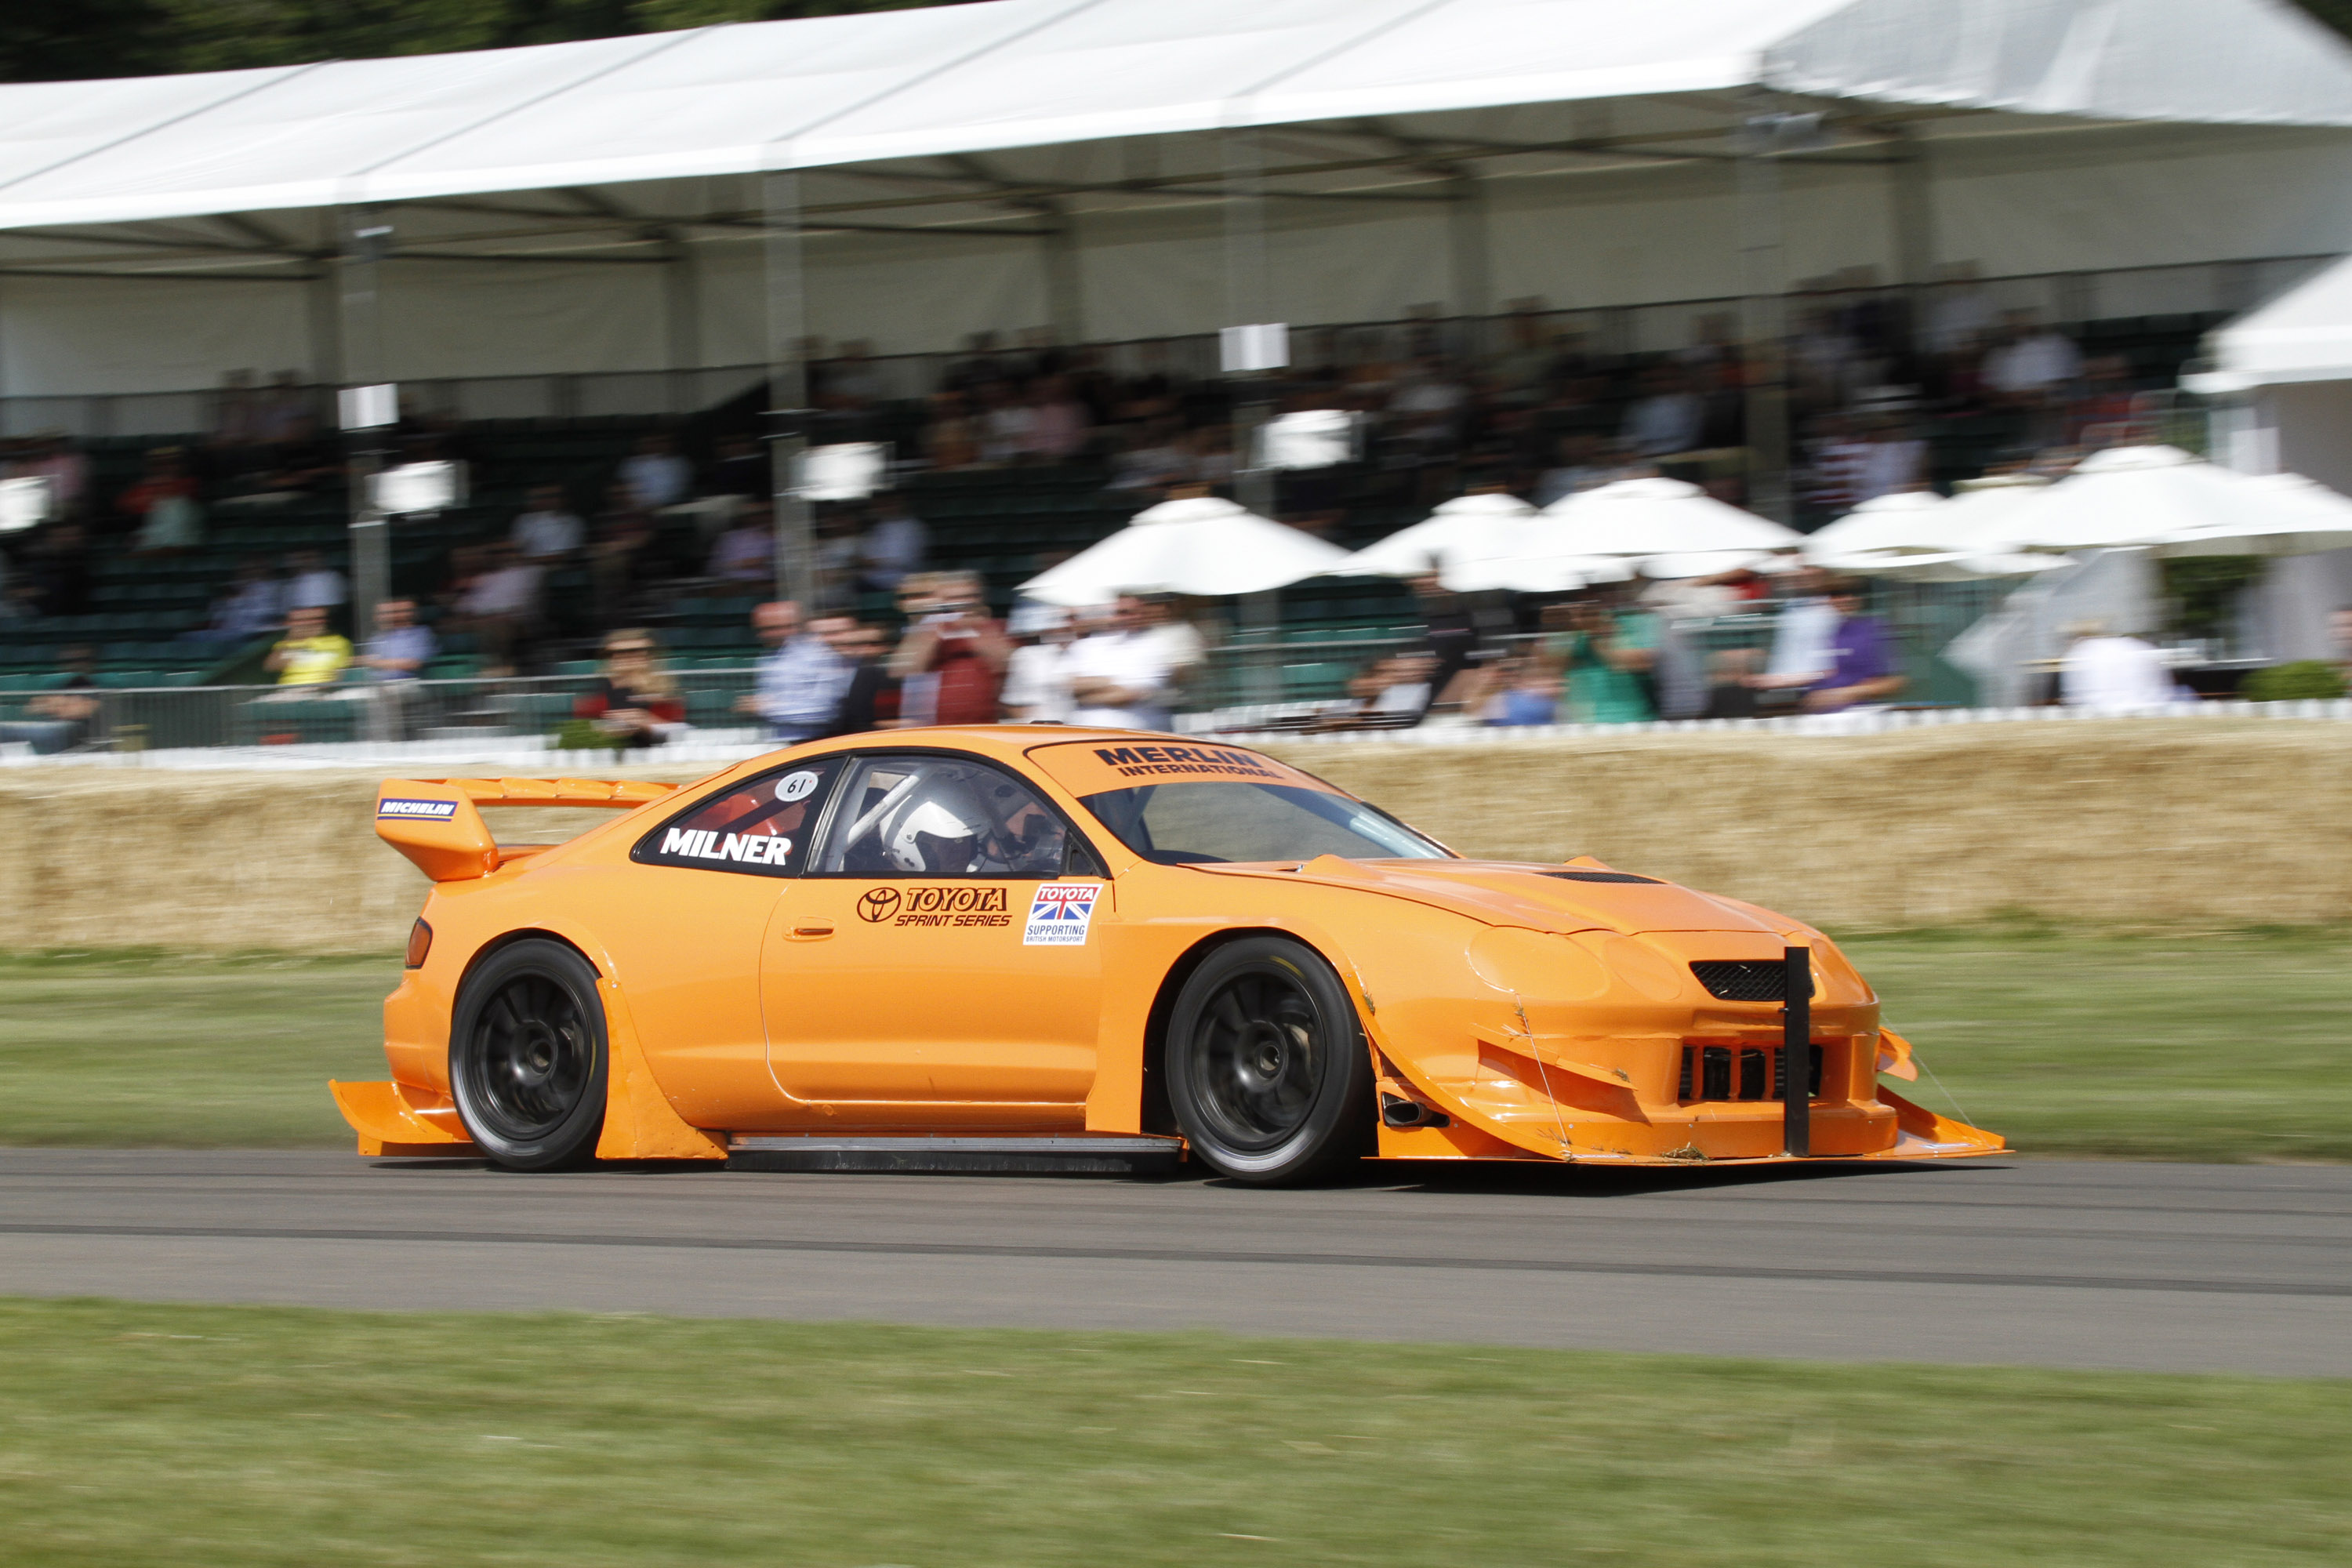 Sprint Series Toyota Celica Gt4 Fastest At The 2011 Goodwood